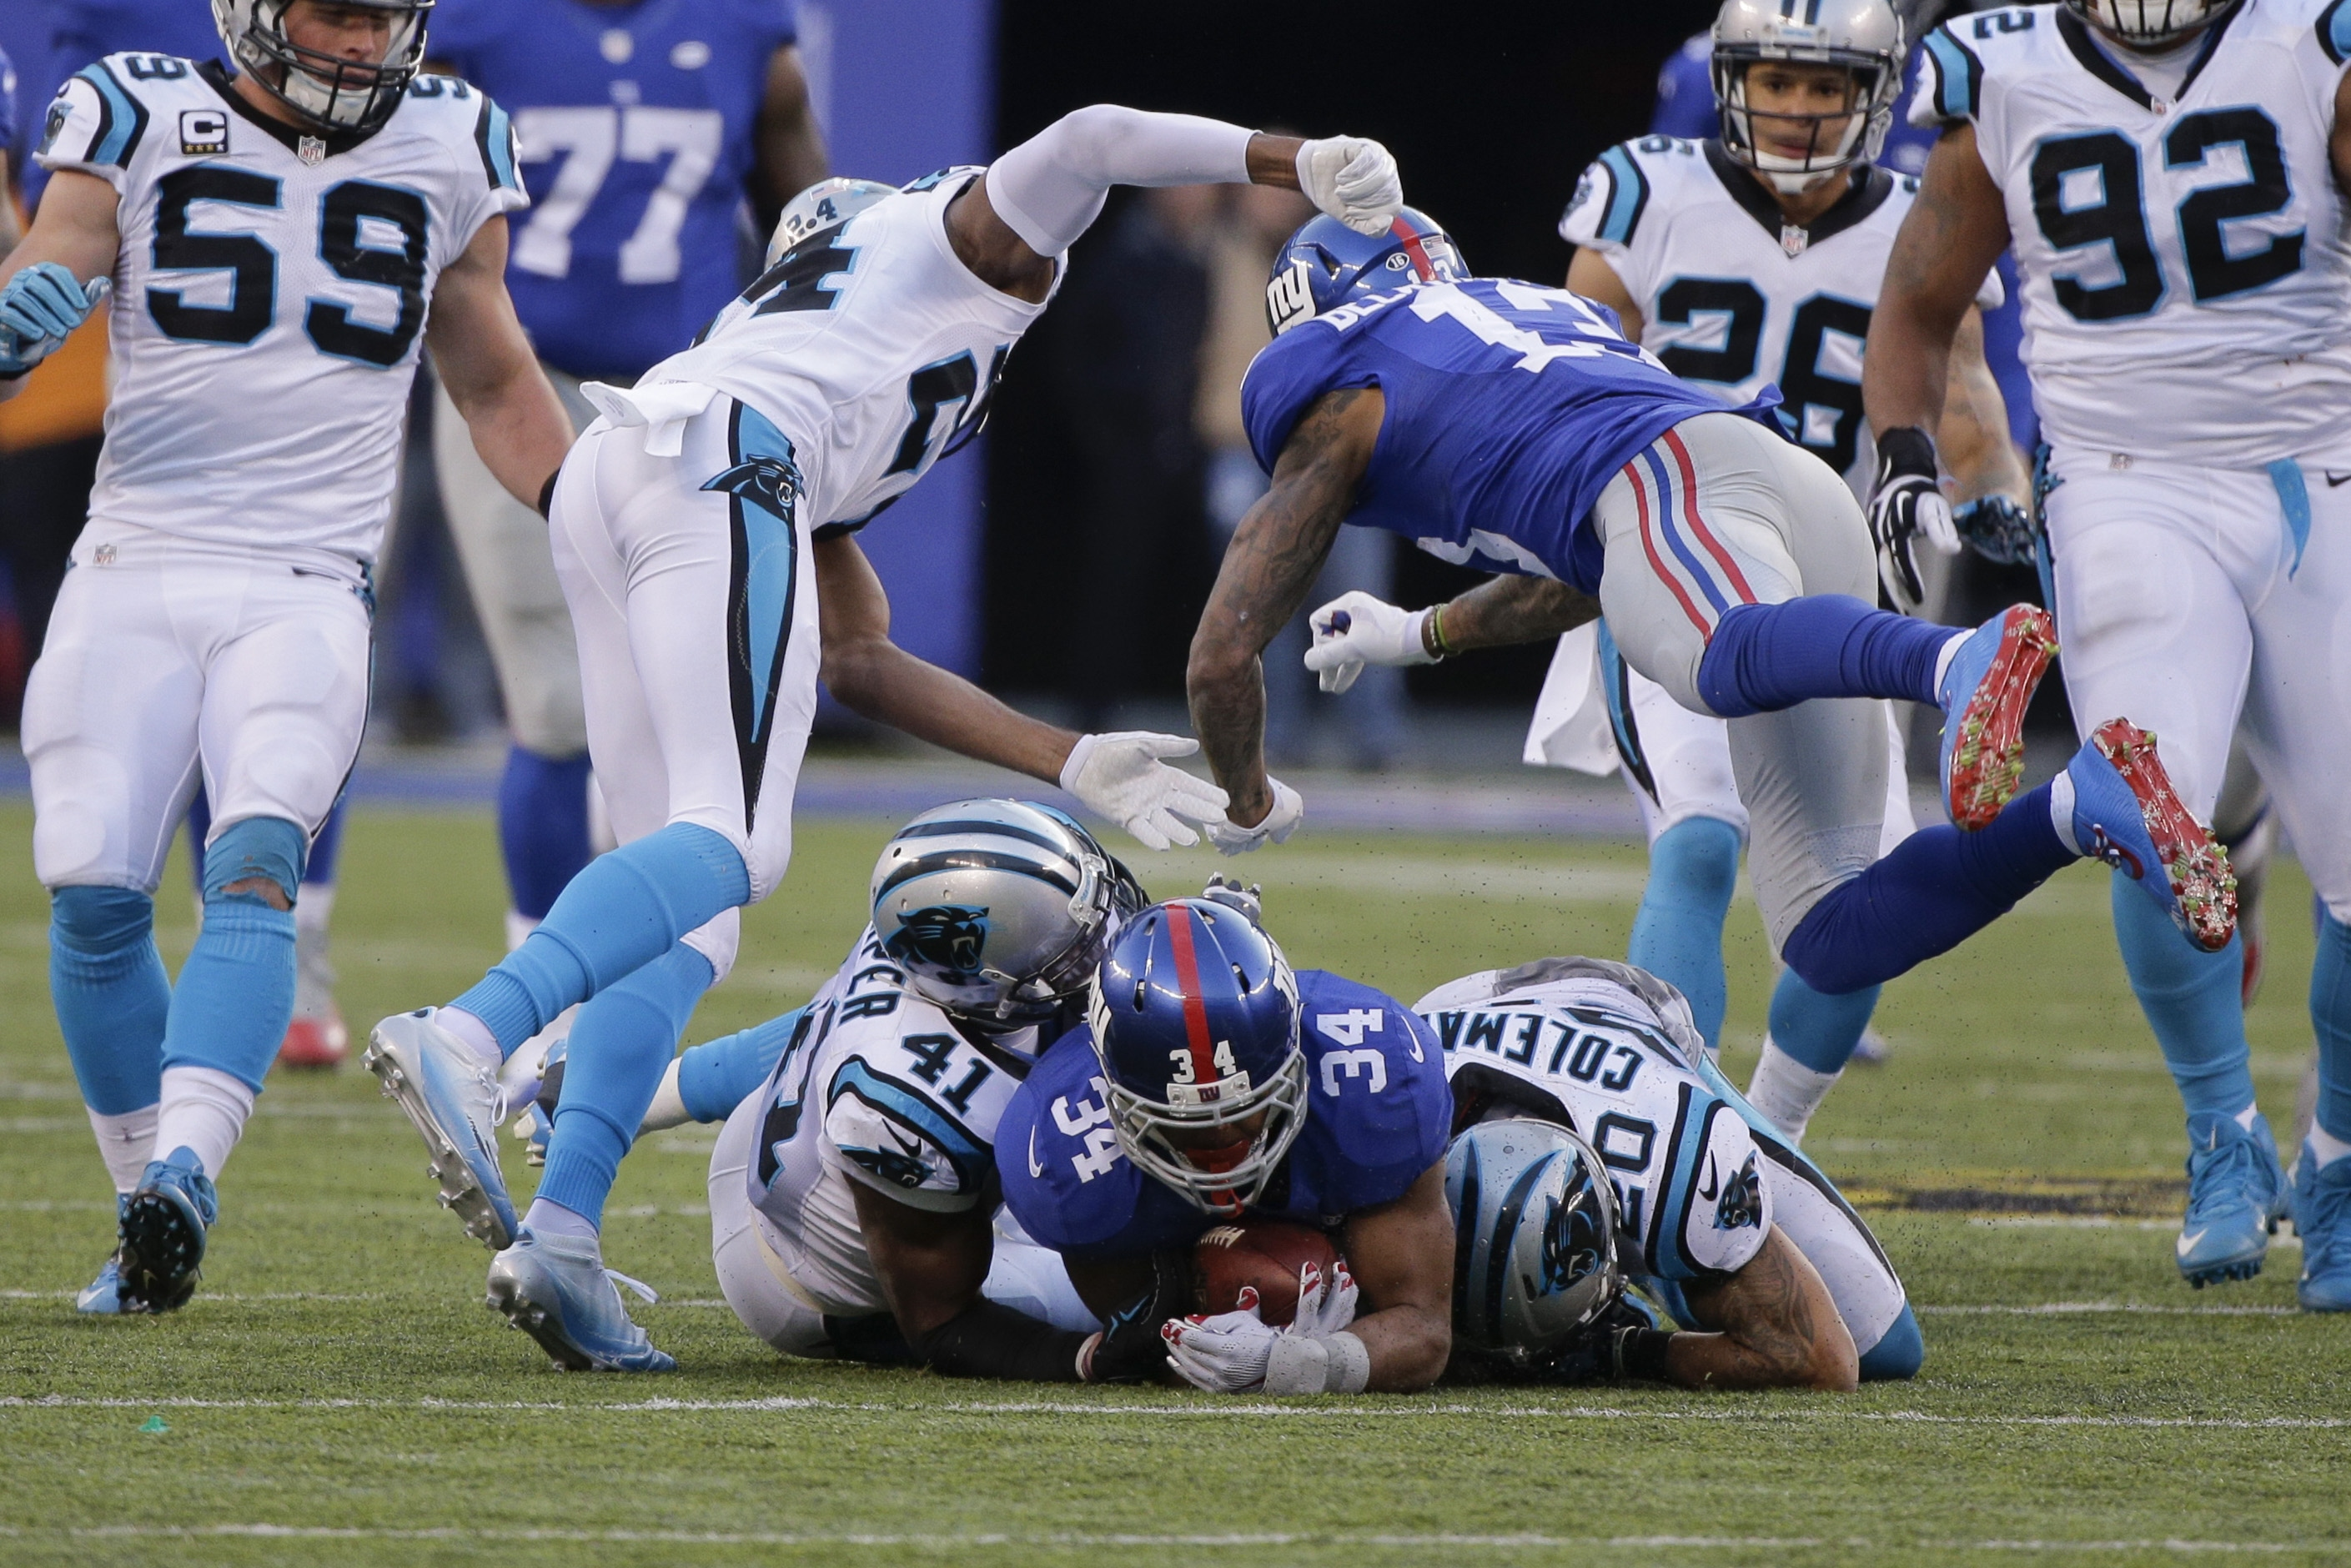 New York Giants' Odell Beckham (13) hits Carolina Panthers' Josh Norman (24) after teammate Shane Vereen (34) is tackled by Kurt Coleman (20) and Roman Harper (41) during the second half of an NFL football game Sunday, Dec. 20, 2015, in East Rutherford, N